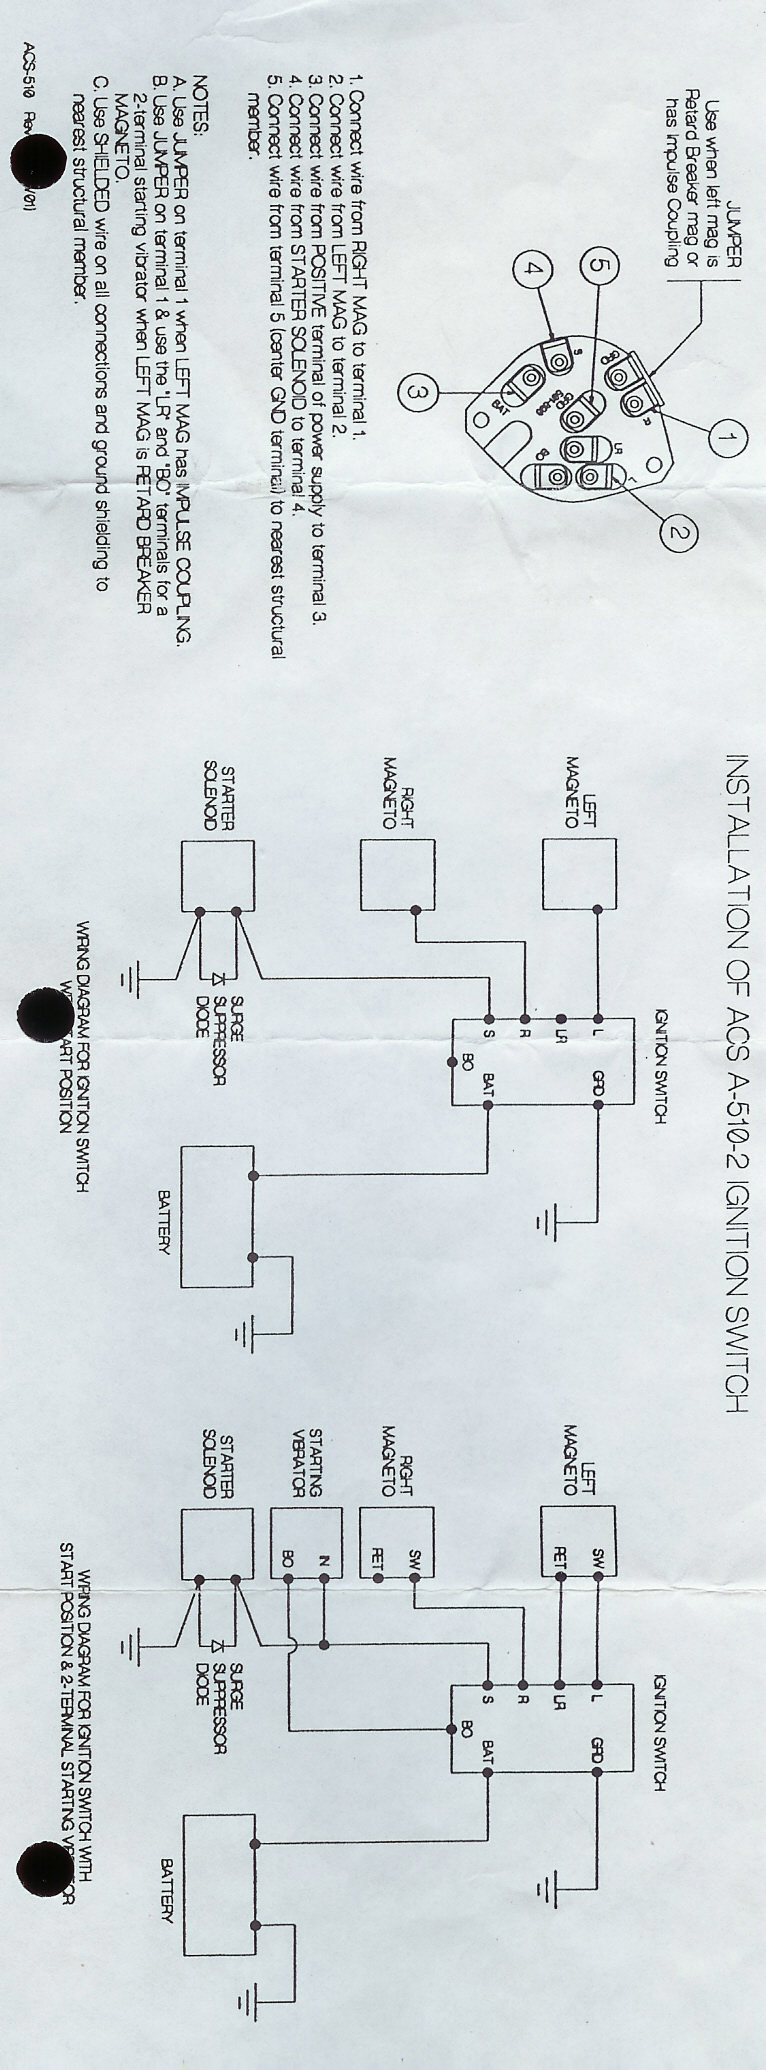 Key_Switch_244 matronics email lists view topic wiring diagram for slick bendix shower of sparks wiring diagram at alyssarenee.co